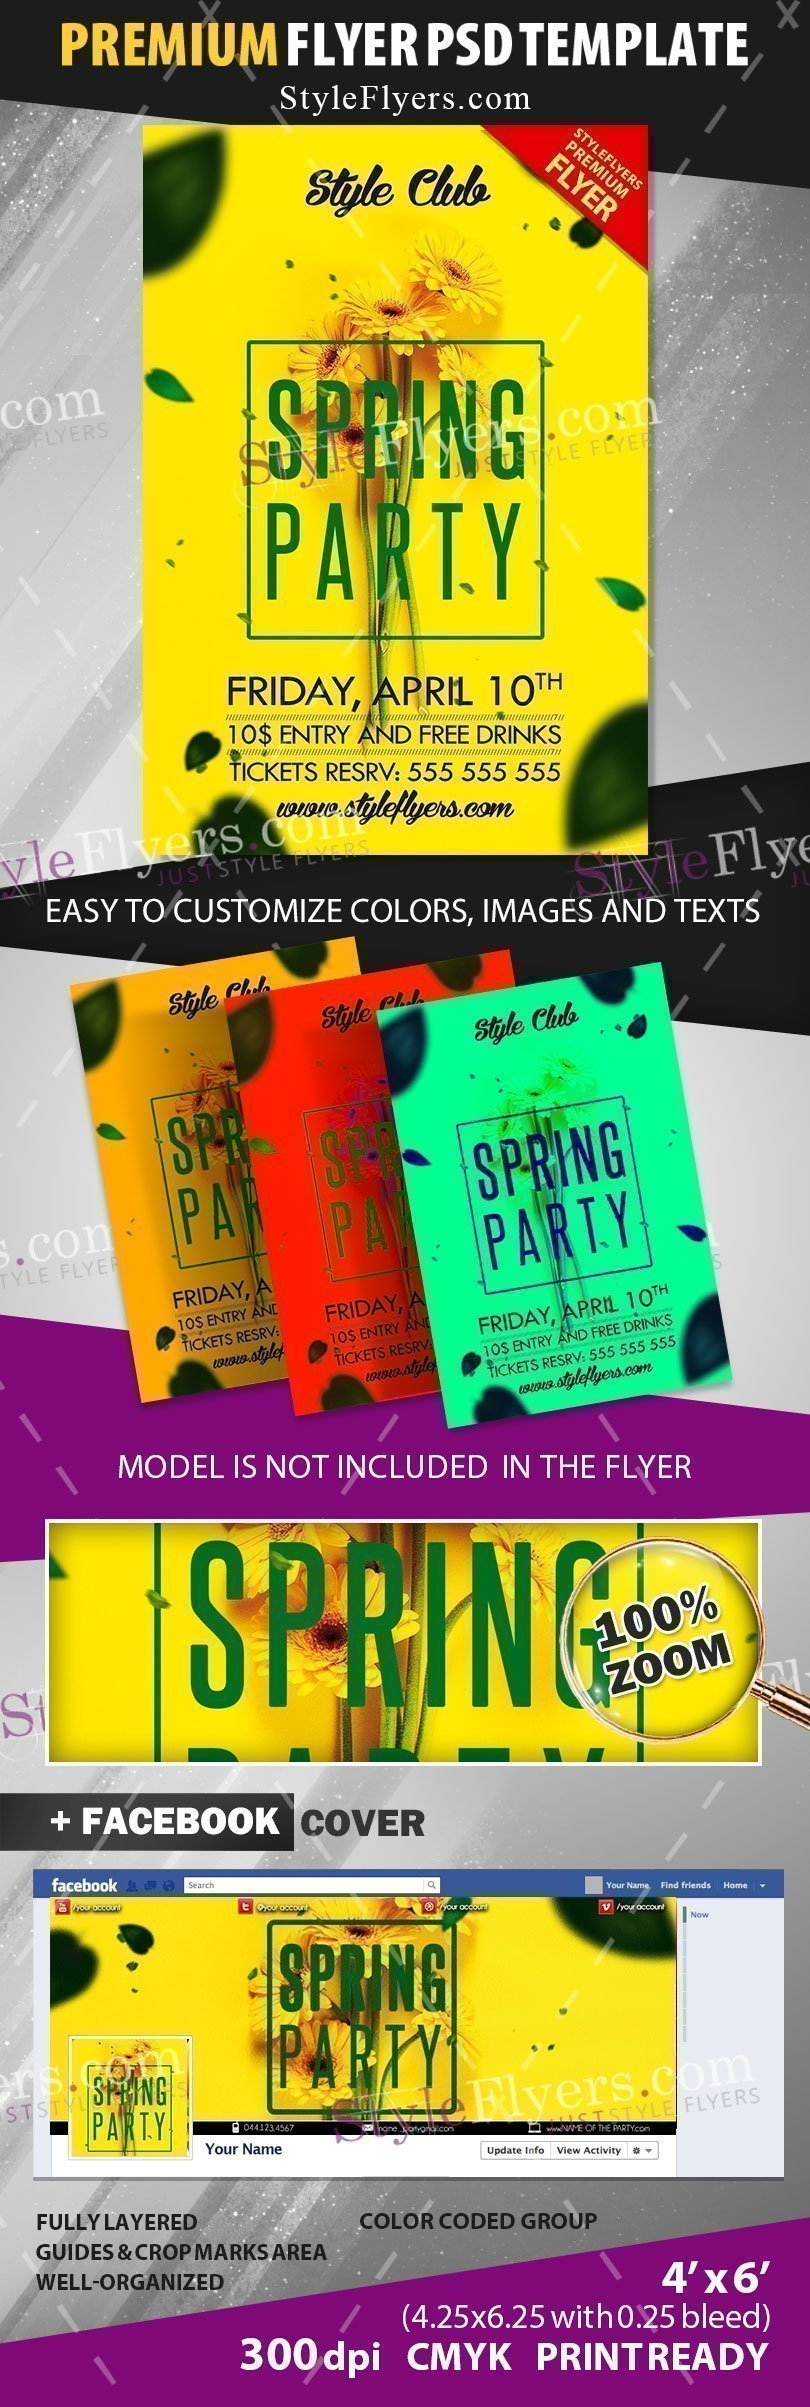 preview_Spring_party_Flyer_premium_template